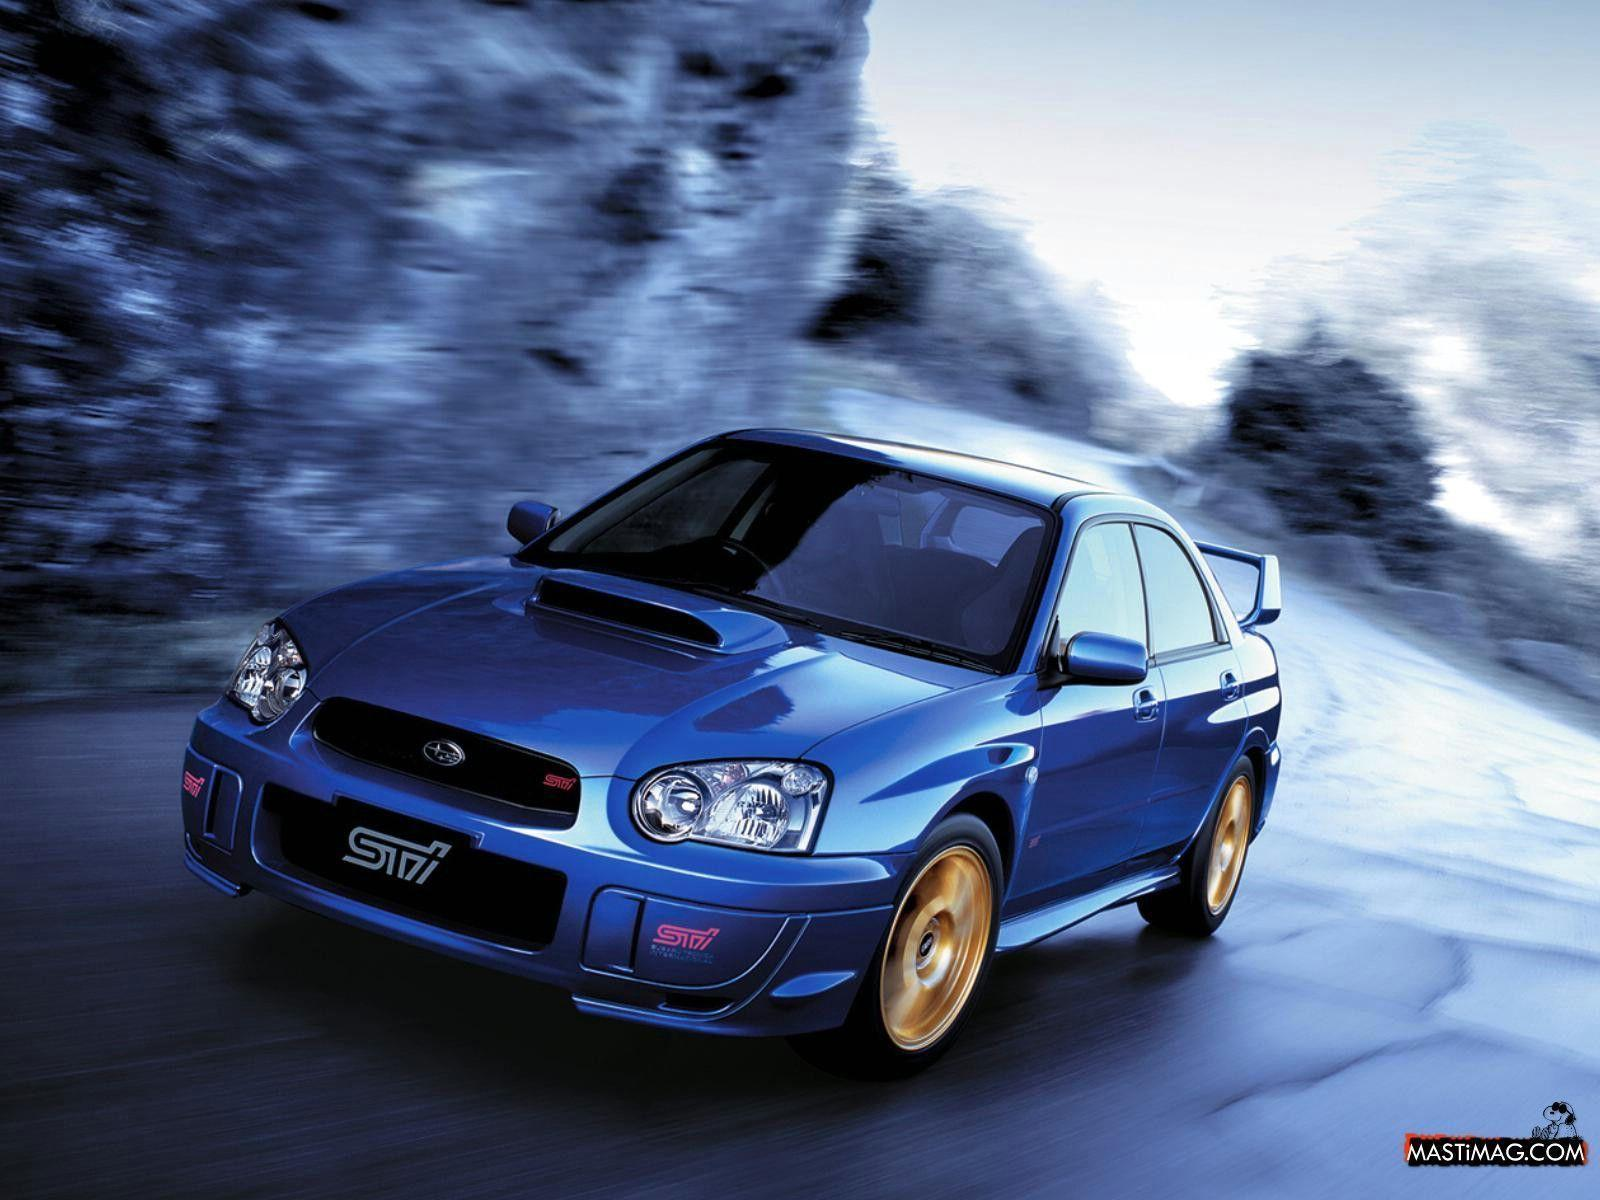 subaru wrx sti wallpapers wallpaper cave. Black Bedroom Furniture Sets. Home Design Ideas